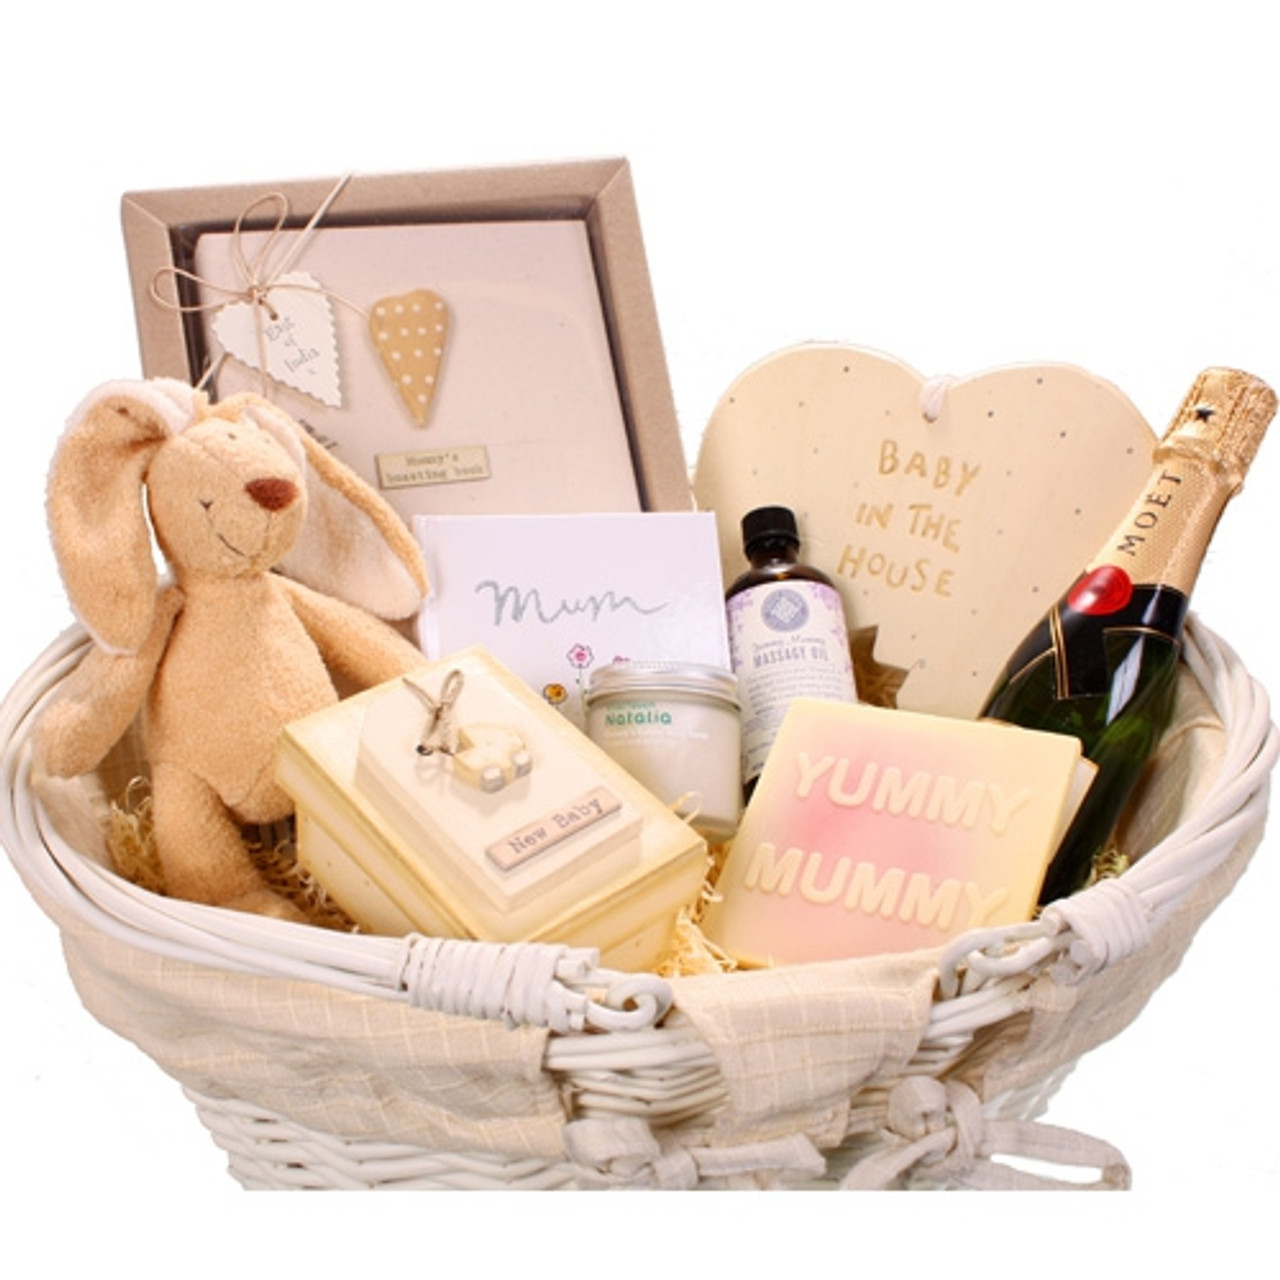 Mum To Be Gifts Choose That Perfect Gift For Mum Baby Shower Host